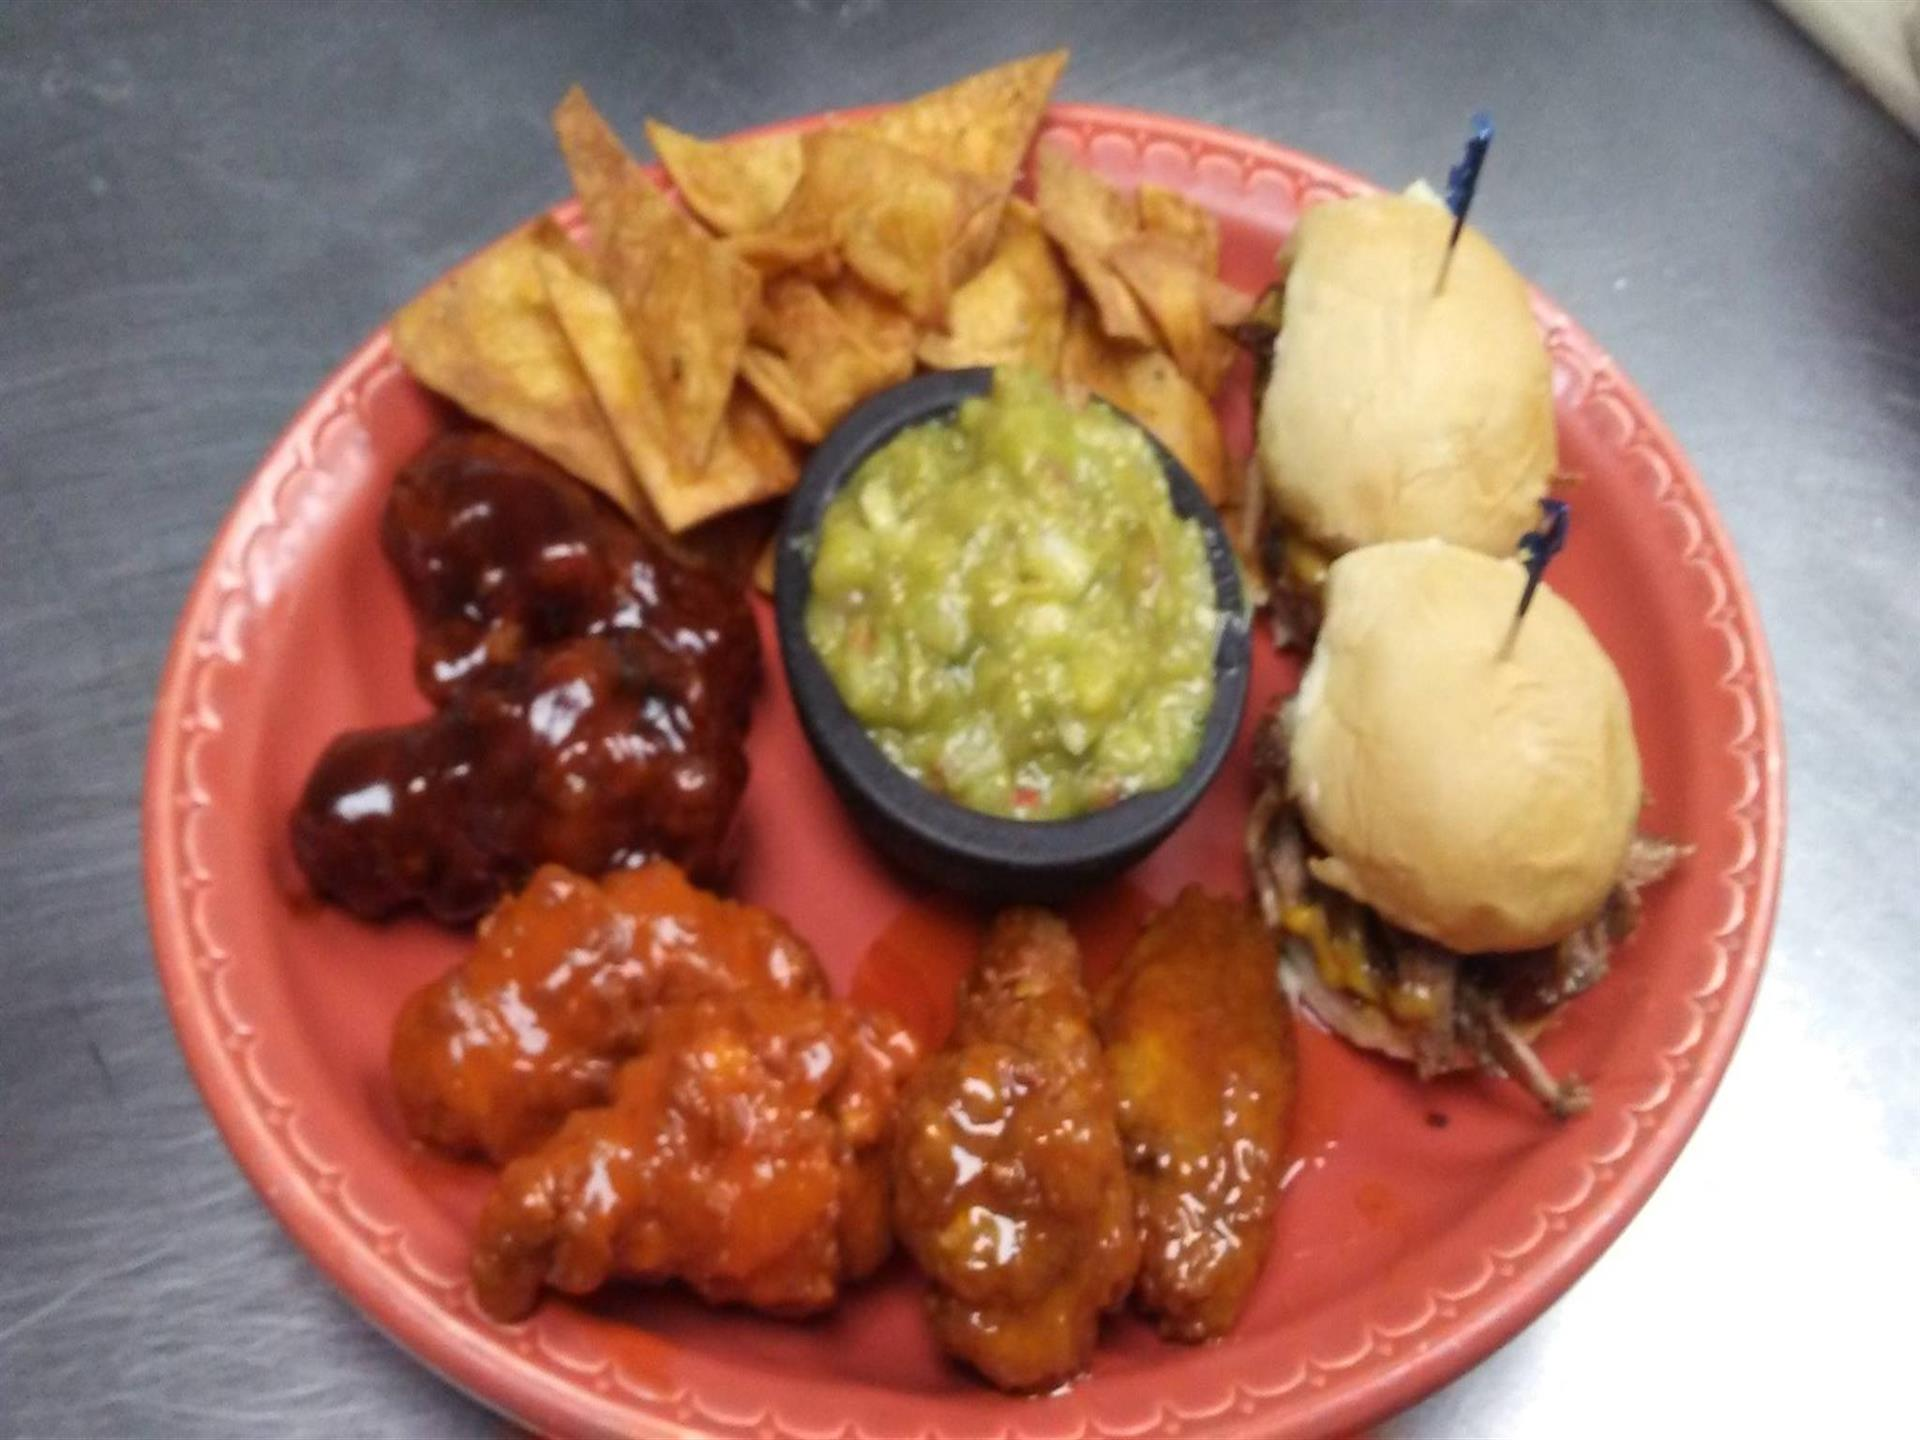 Assortment of appetizers on red plate. Wontons, glazed chicken wings, two sliders and guacamole dip.